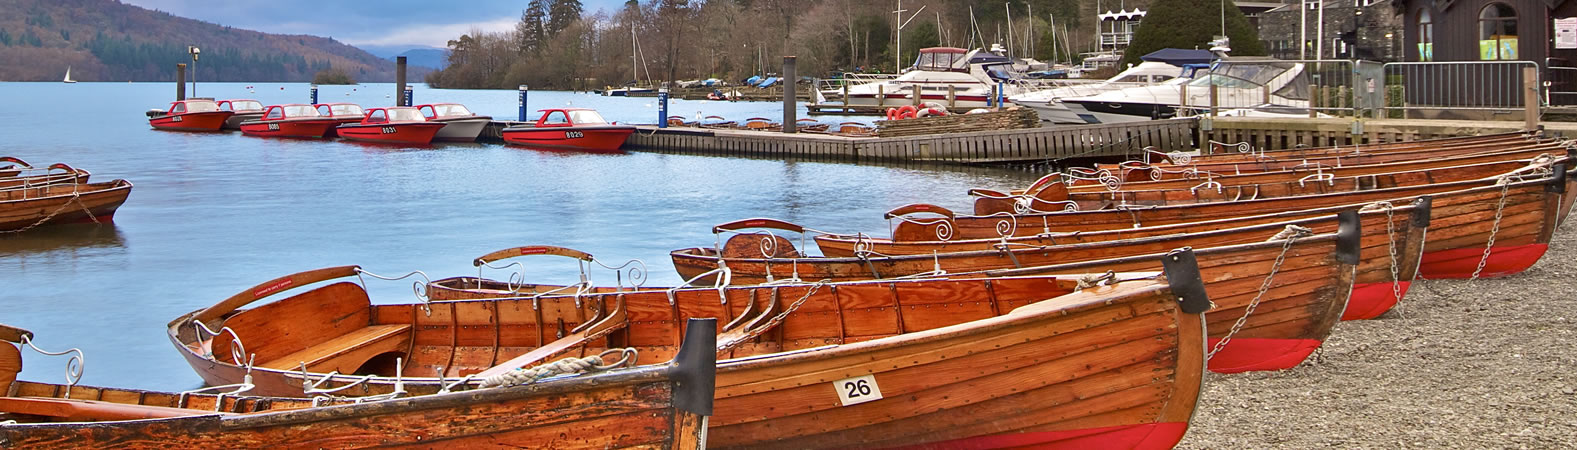 lake-district-windermere1